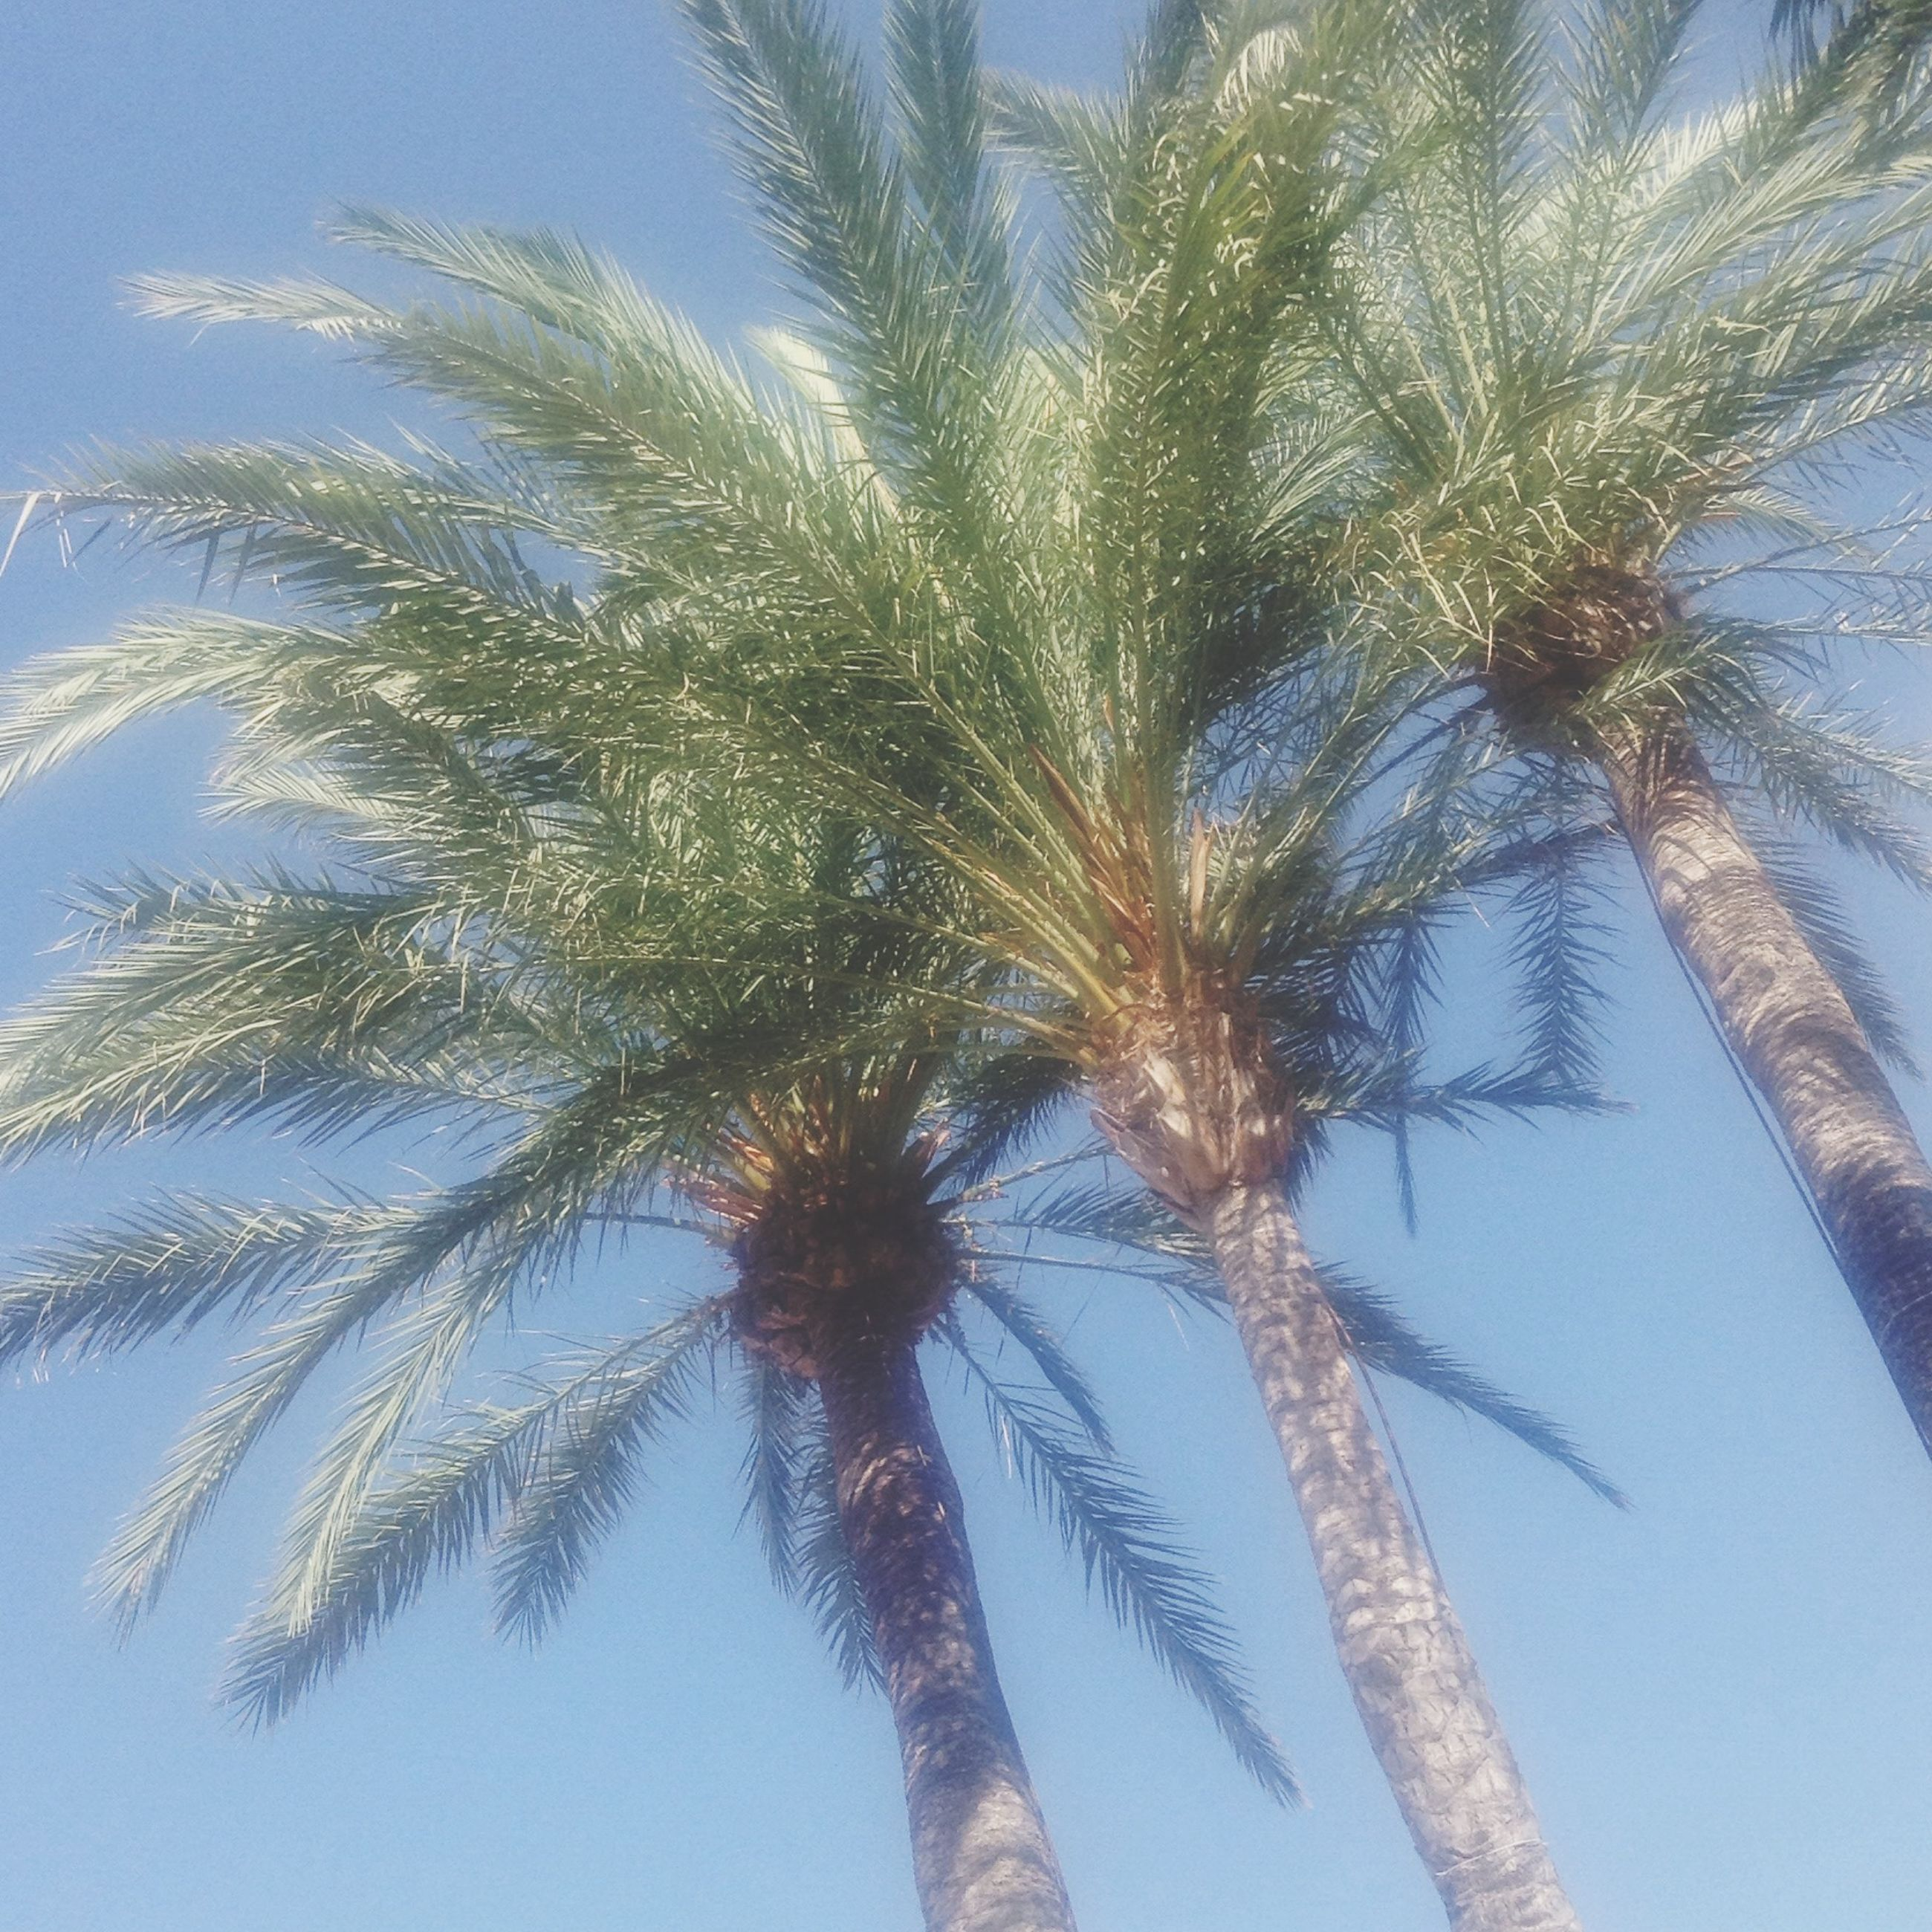 low angle view, palm tree, tree, growth, clear sky, nature, branch, sky, beauty in nature, tranquility, blue, day, outdoors, palm leaf, no people, tree trunk, sunlight, tall - high, close-up, coconut palm tree